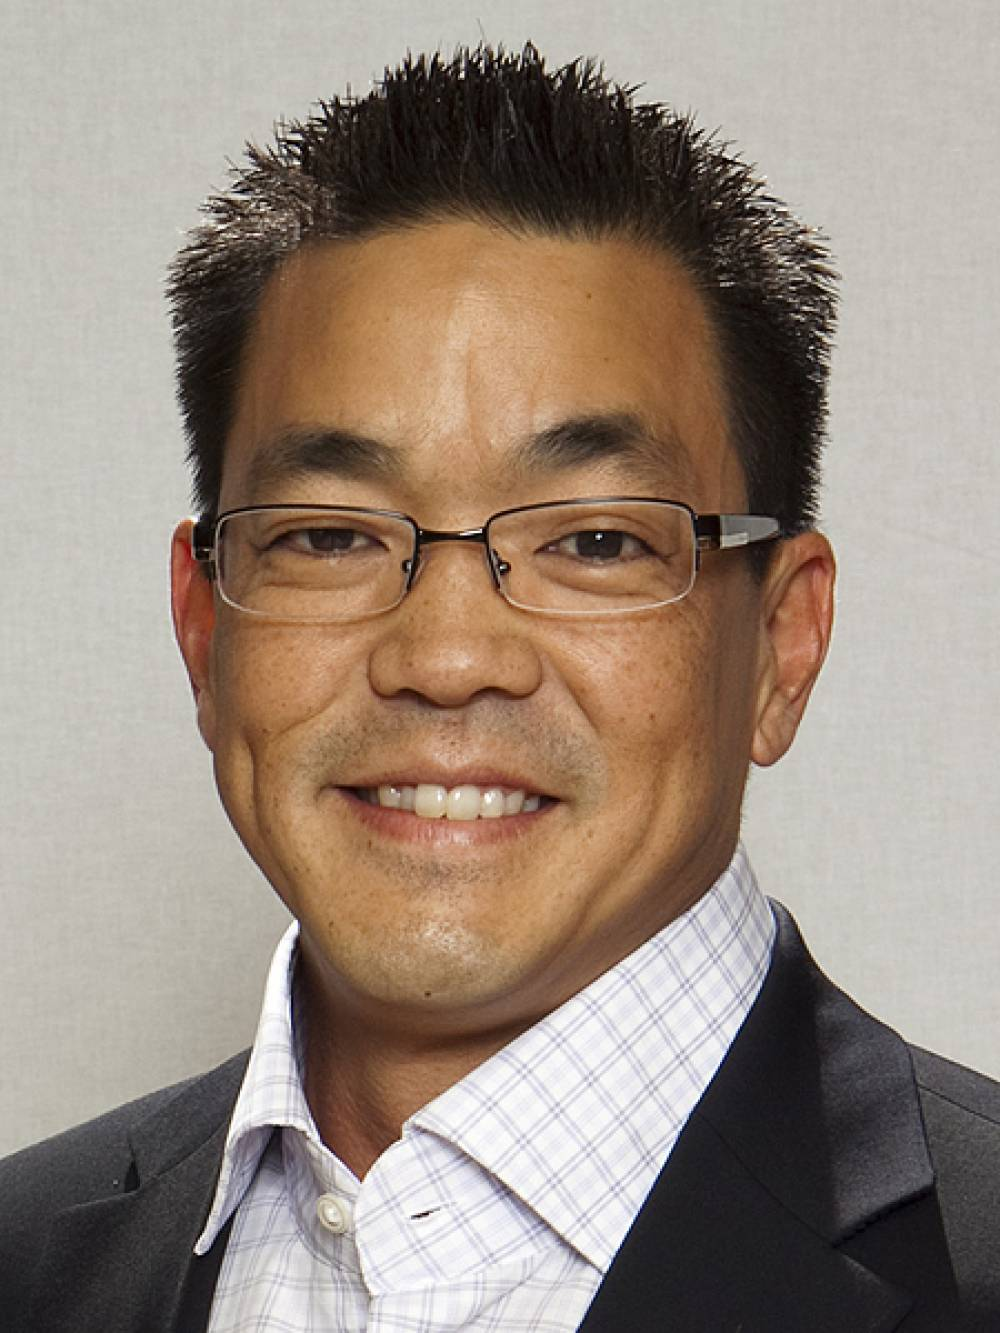 Arecont Vision Expands Channel Management Team with Addition of Industry Veteran Kurt Takahashi